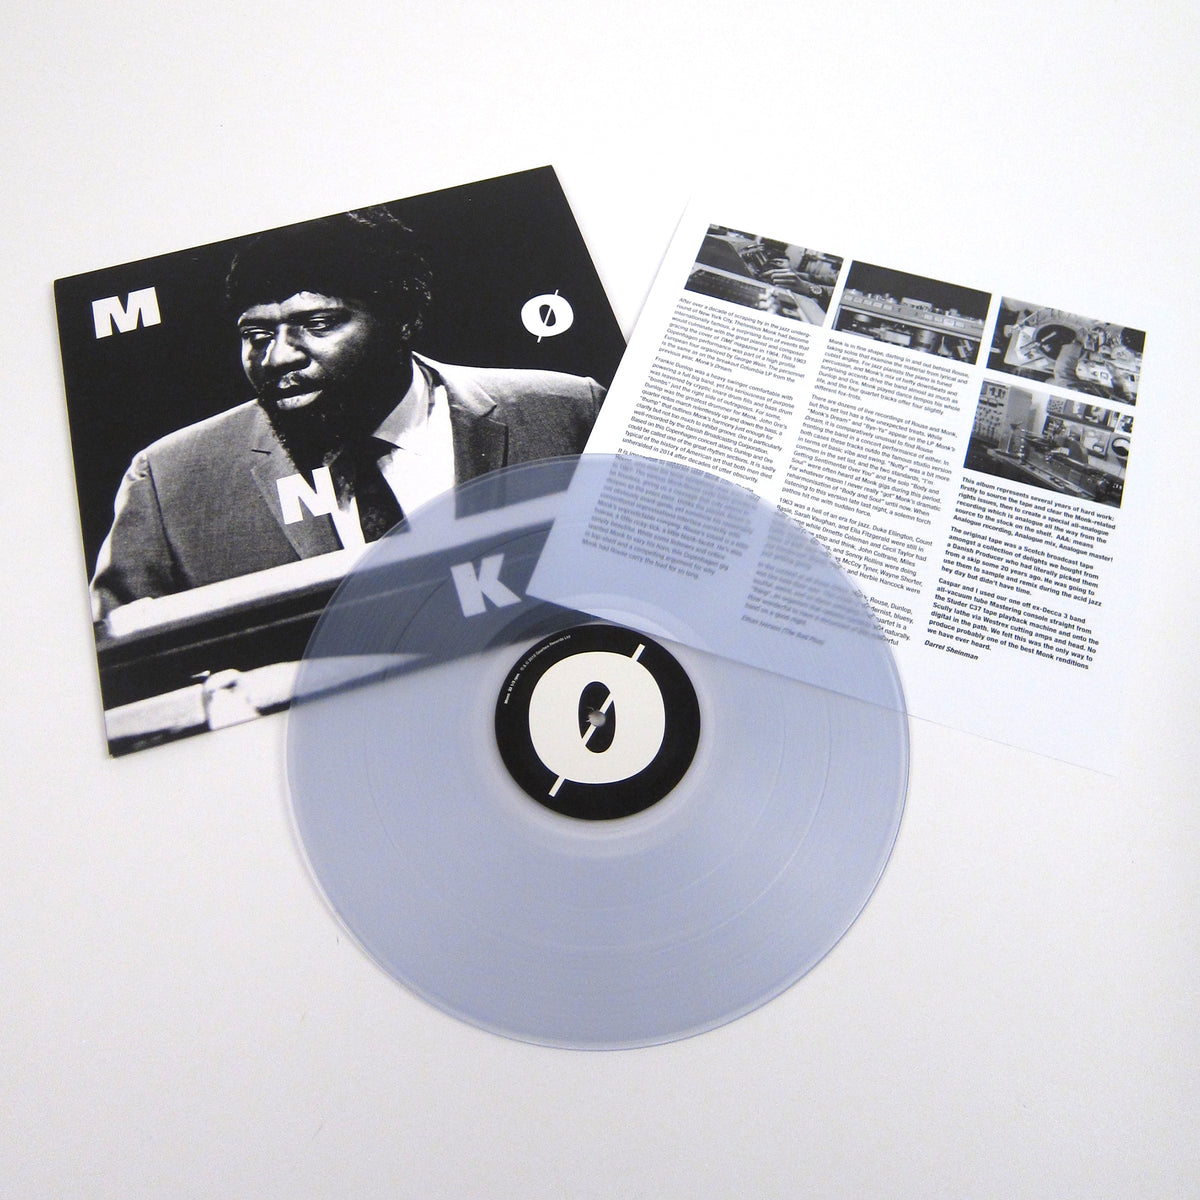 Thelonious Monk: Monk (Indie Exclusive Colored Vinyl) Vinyl LP